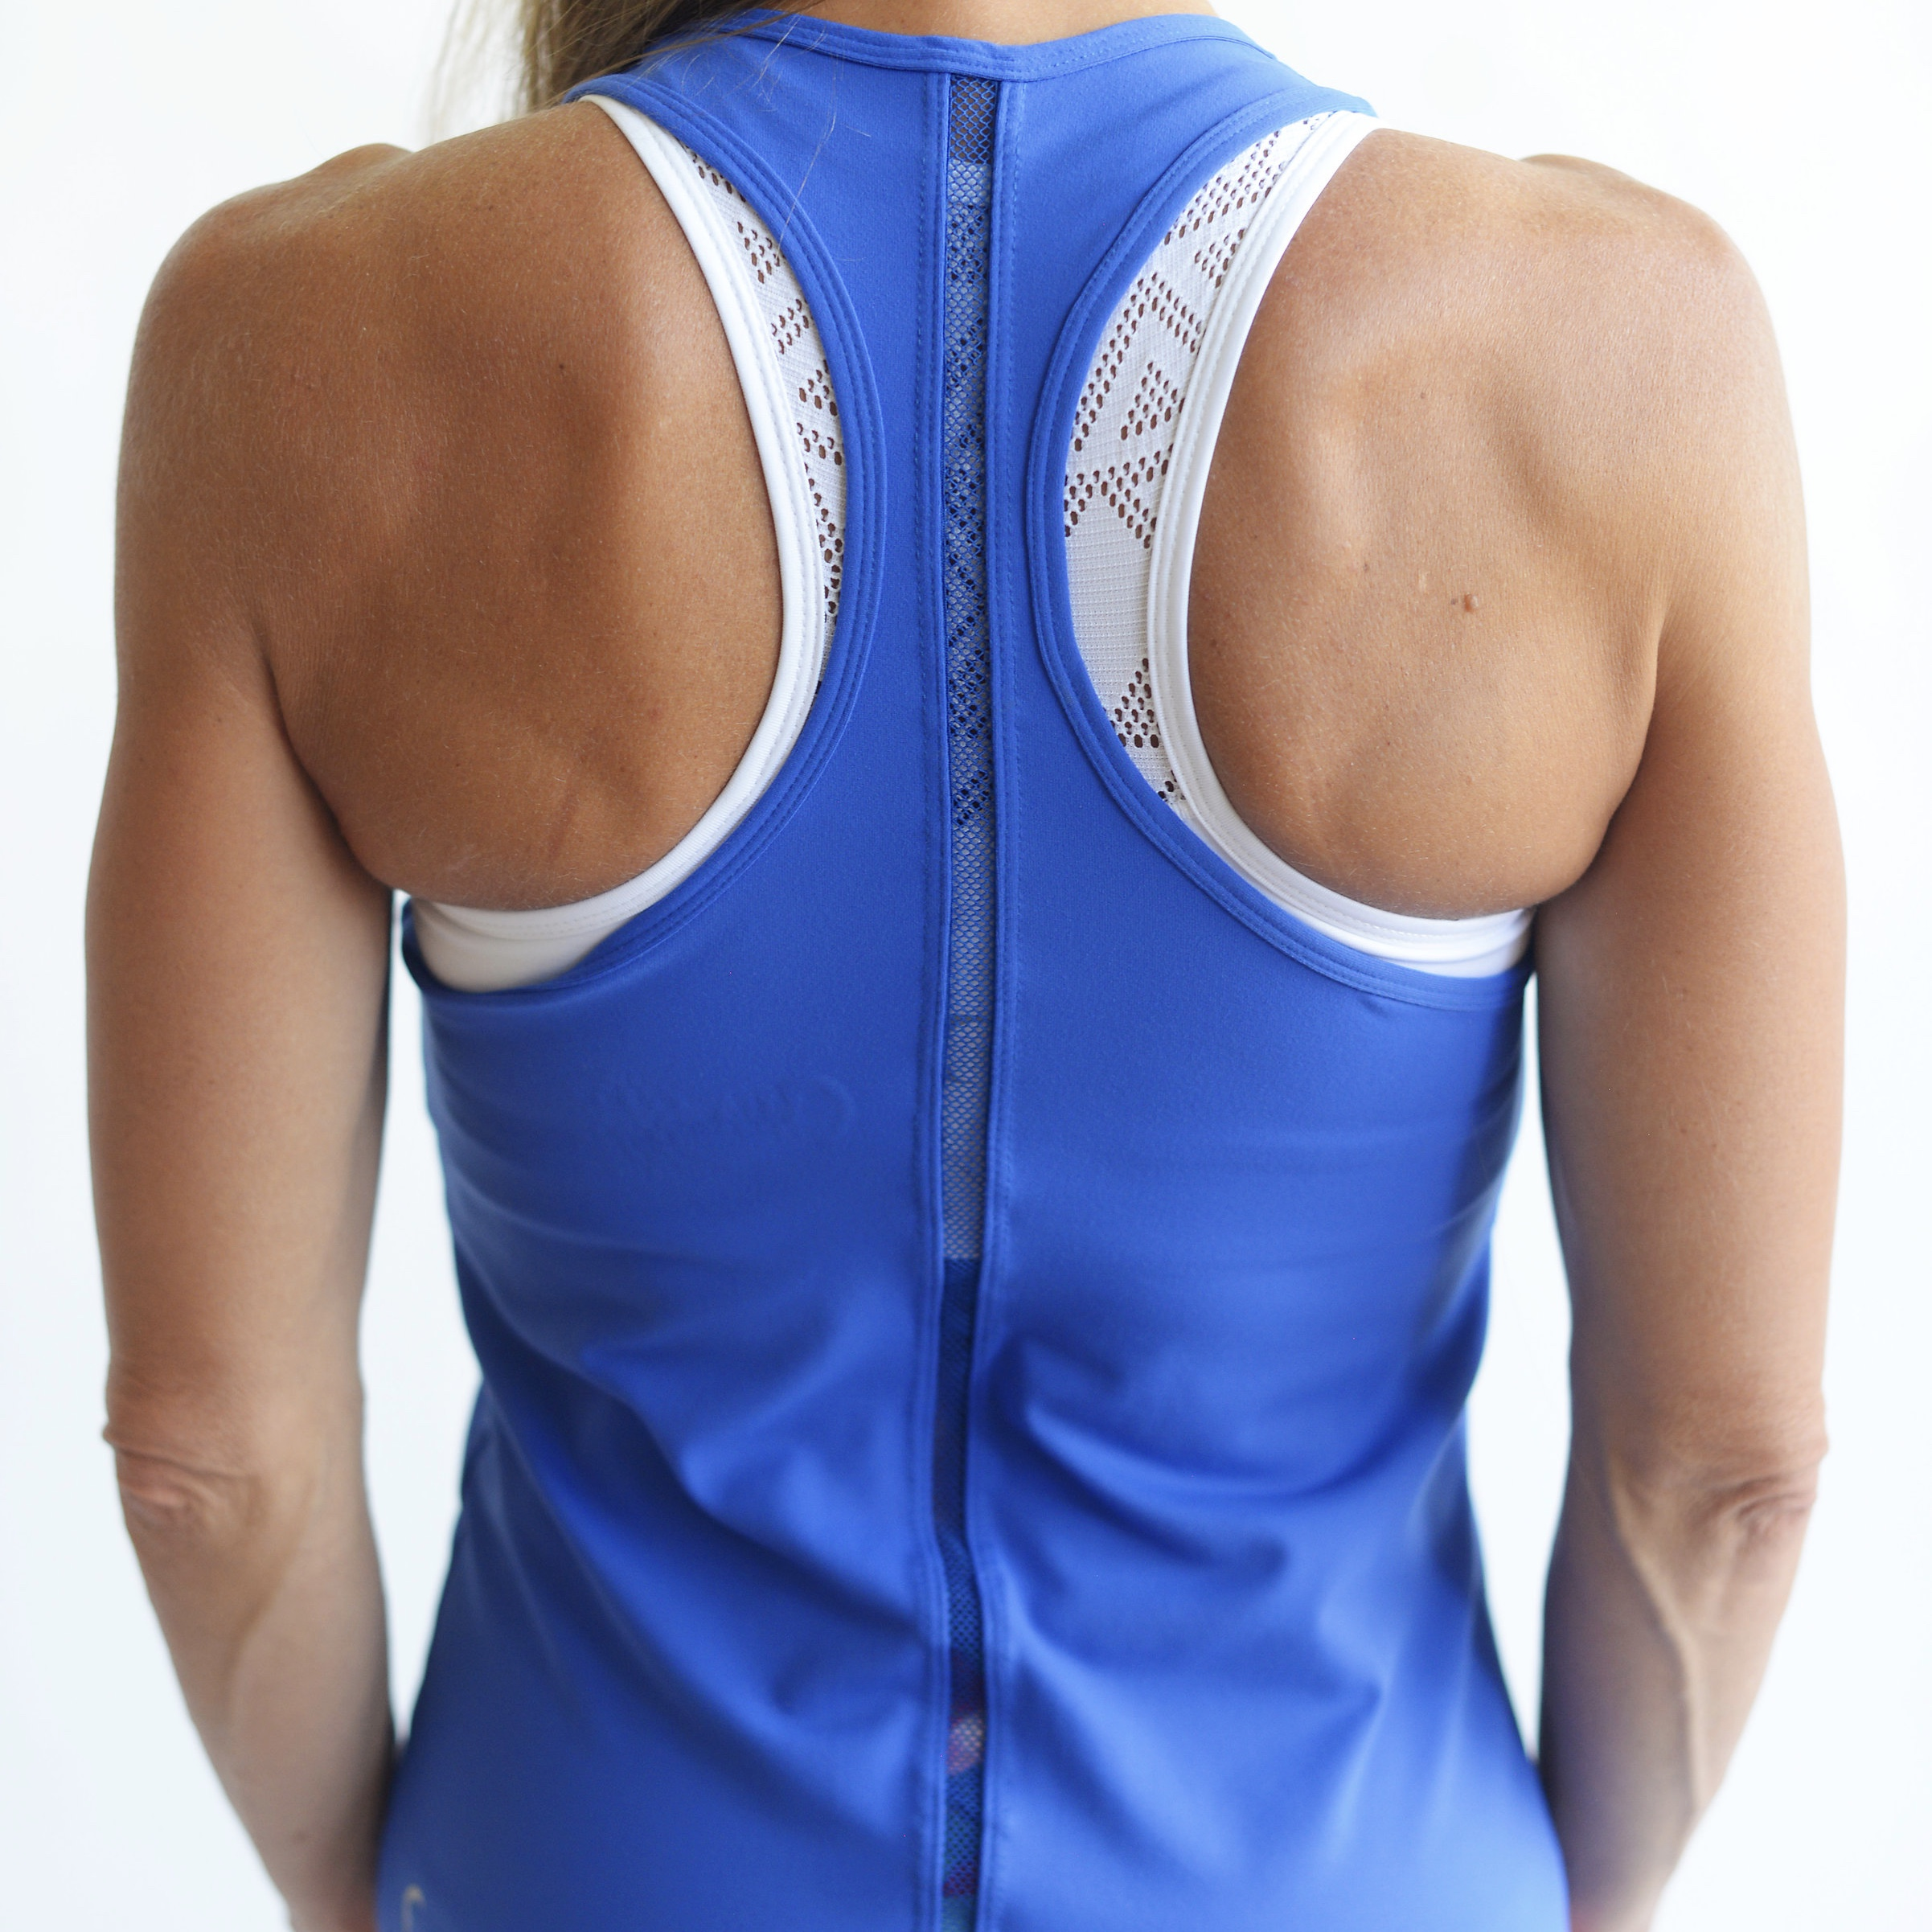 1621-Royal_Effortless_Tank-back.jpg